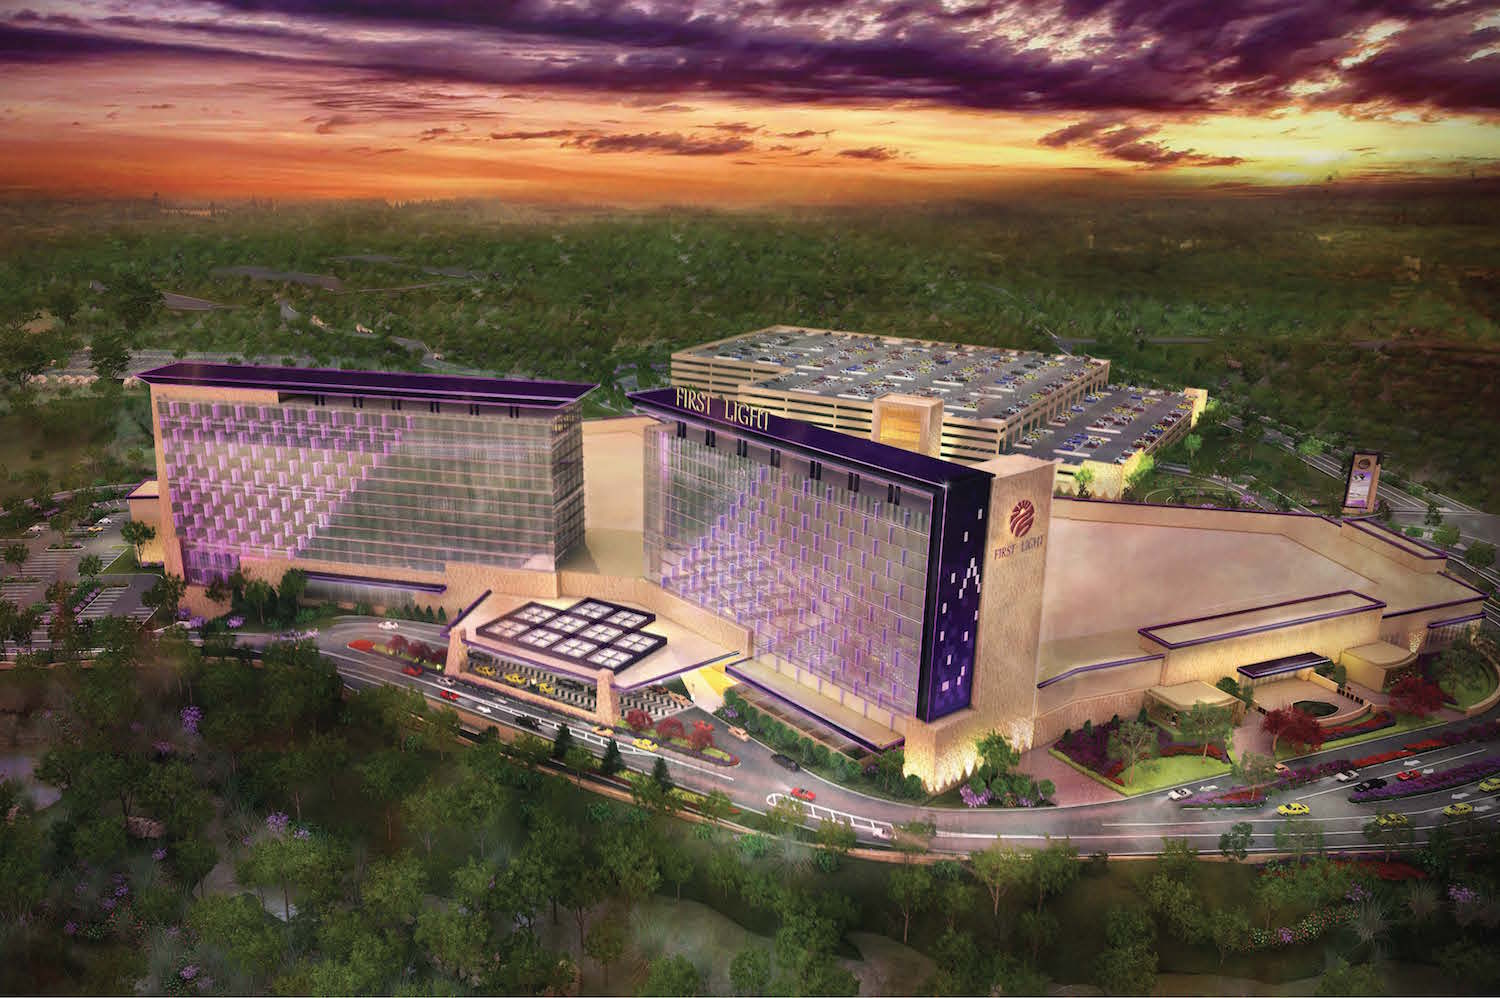 Mashpee Wampanoag Tribe files notice of appeal in casino lawsuit